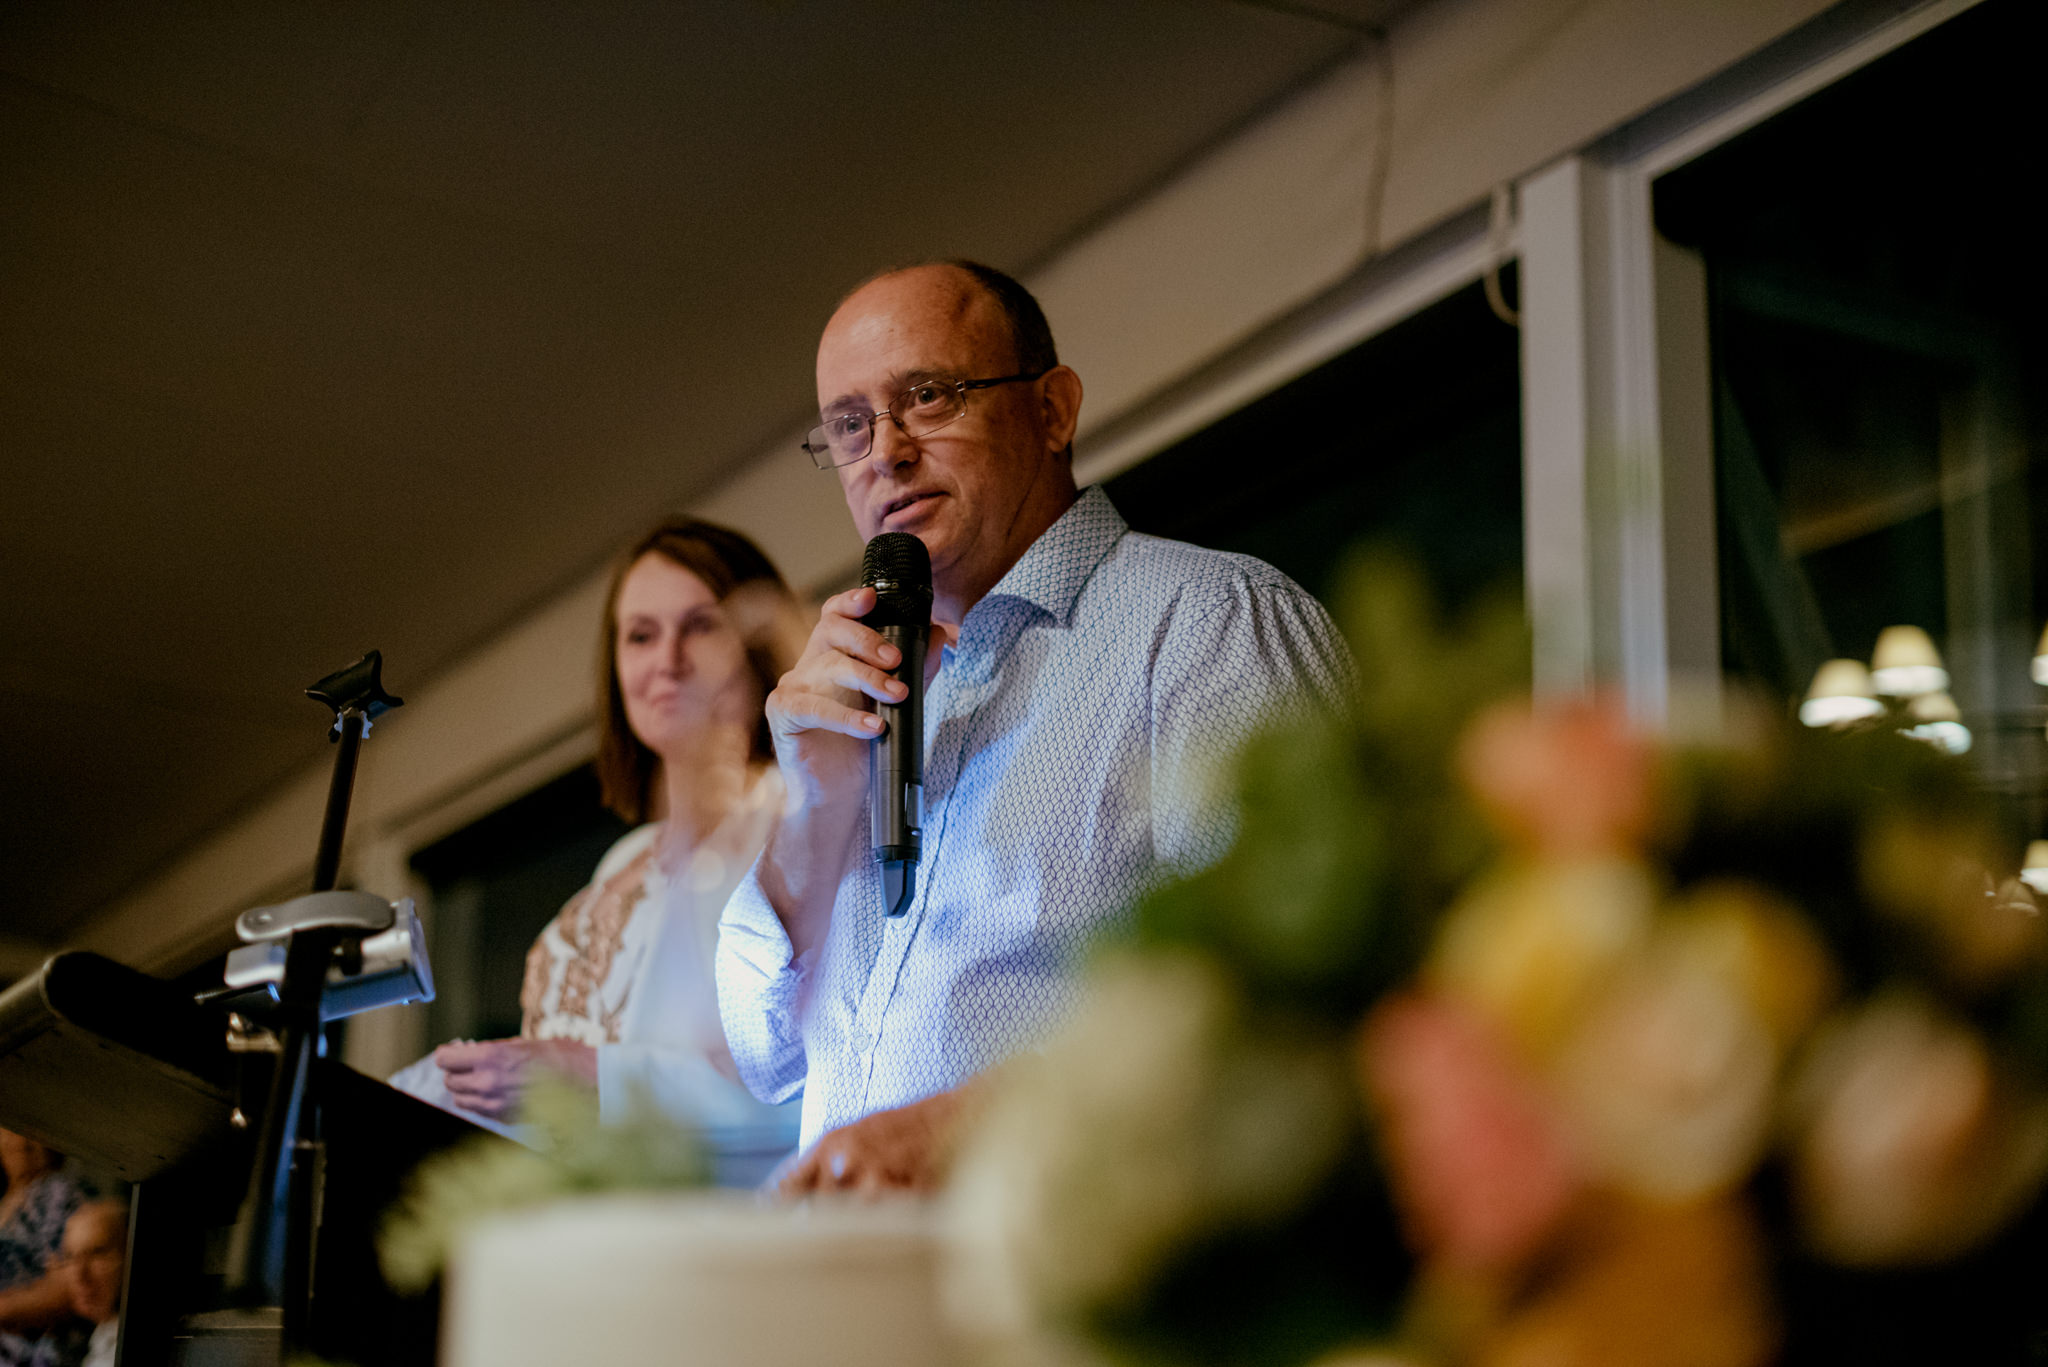 Father of the bride and mother deliver wedding speech